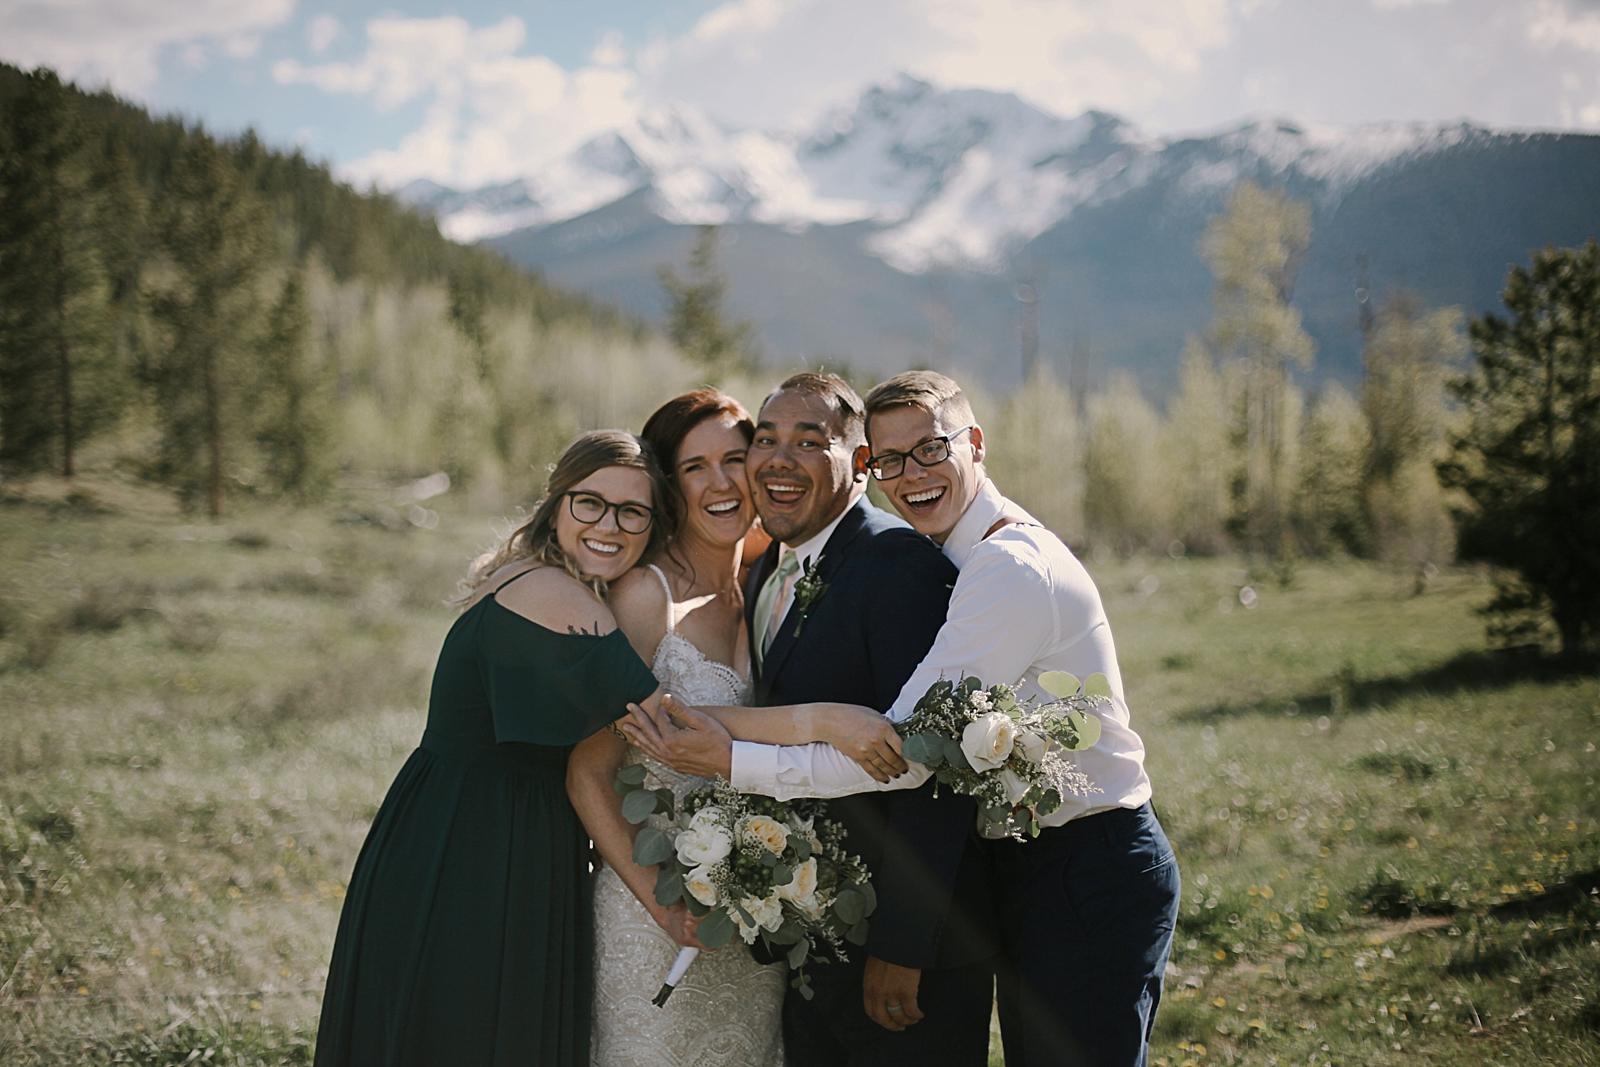 bridal party at agape outpost, the church at agape outpost, breckenridge colorado wedding, breckenridge colorado wedding photographer, agape outpost wedding photographer